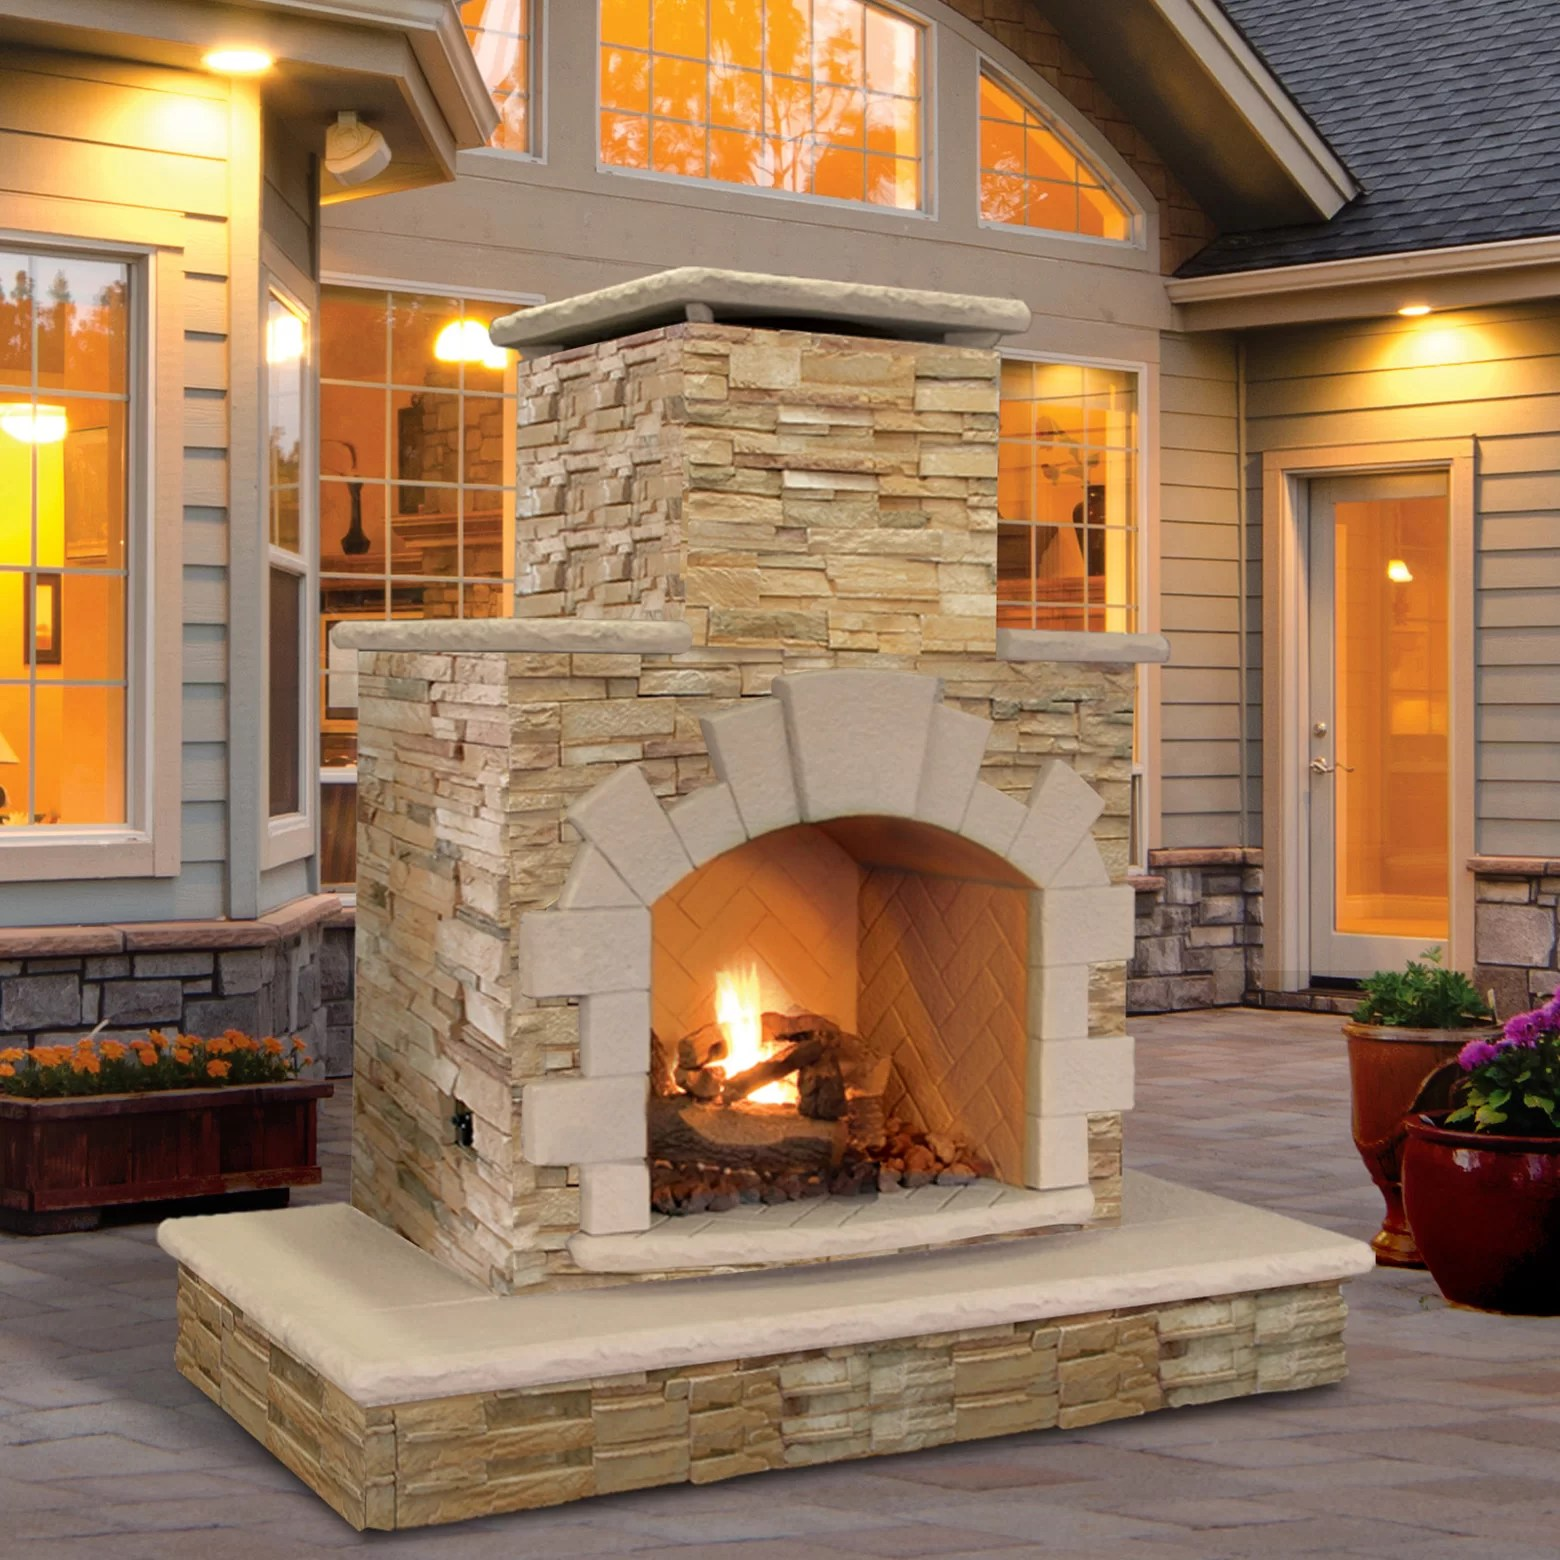 Outdoor Fireplace Materials Calflame Natural Stone Propane Gas Outdoor Fireplace Ebay